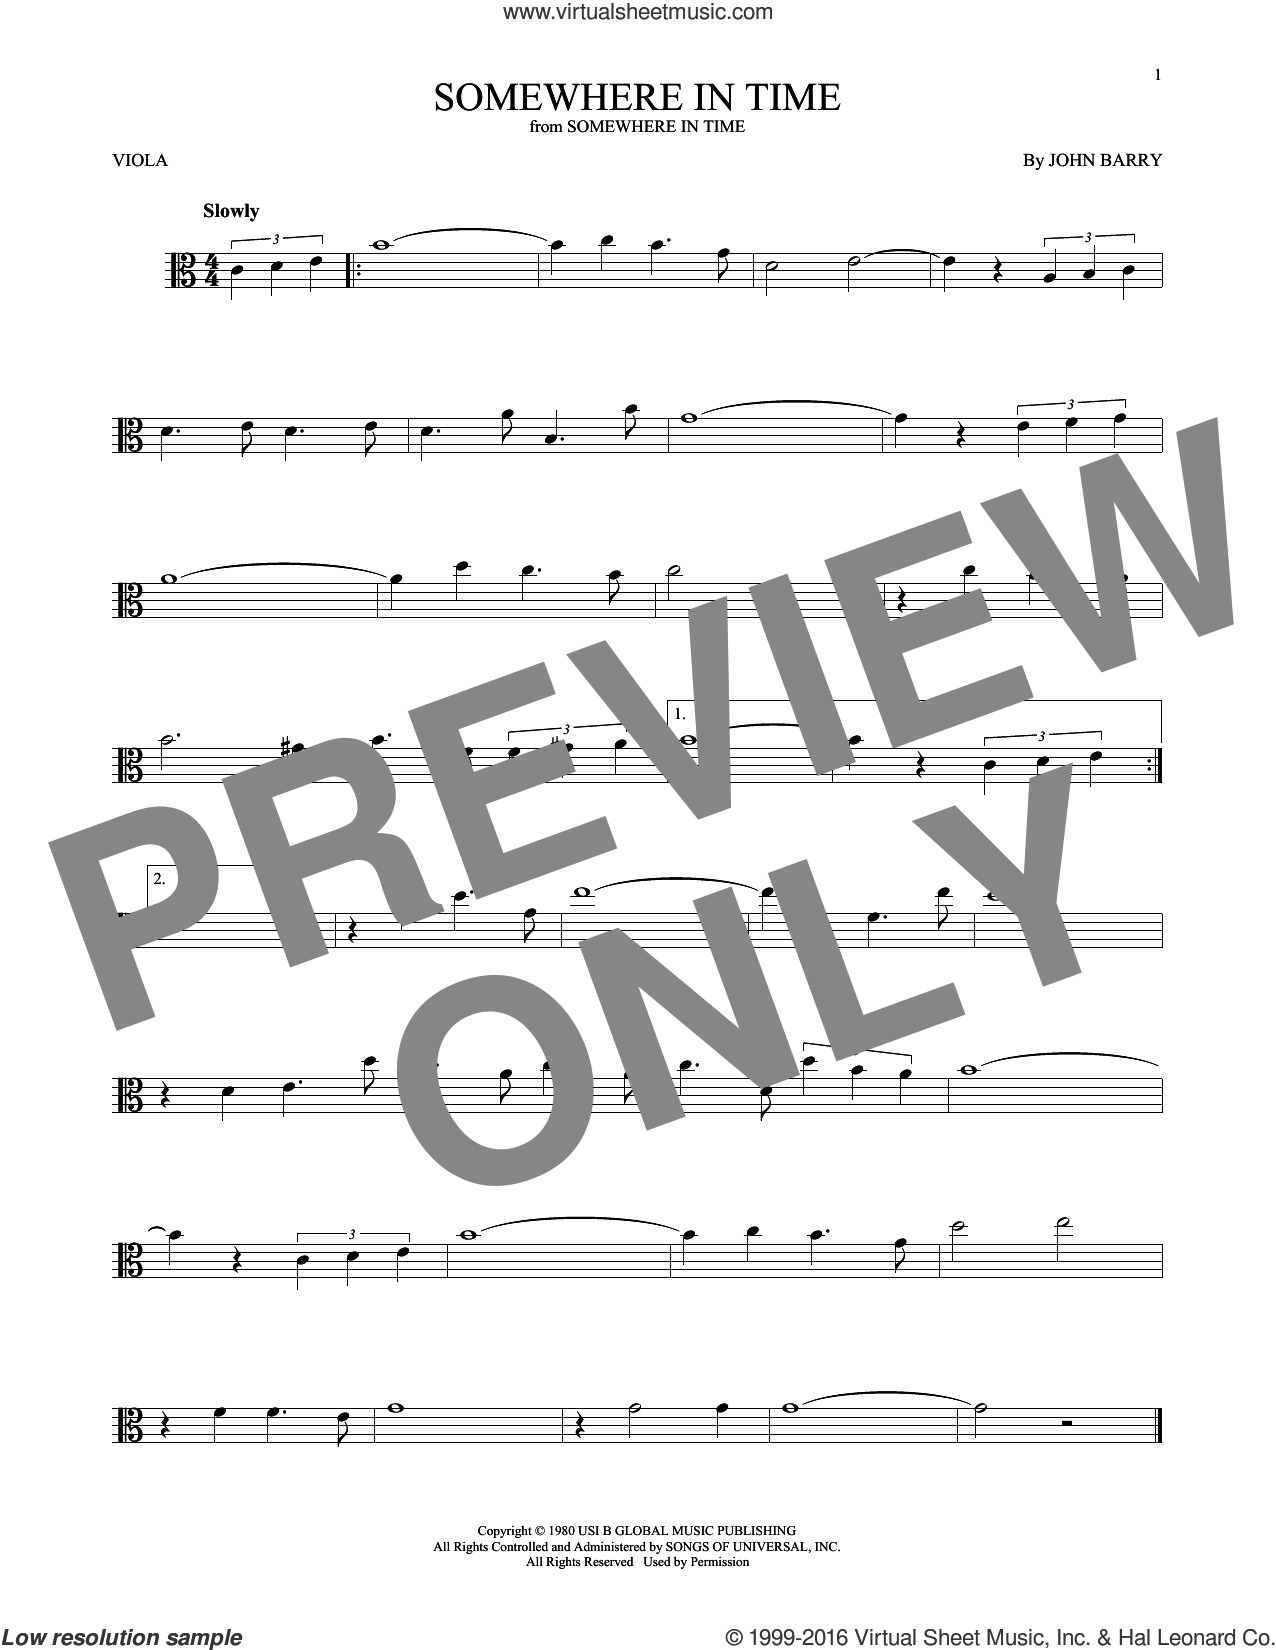 Somewhere In Time sheet music for viola solo by John Barry and B.A. Robertson, intermediate skill level